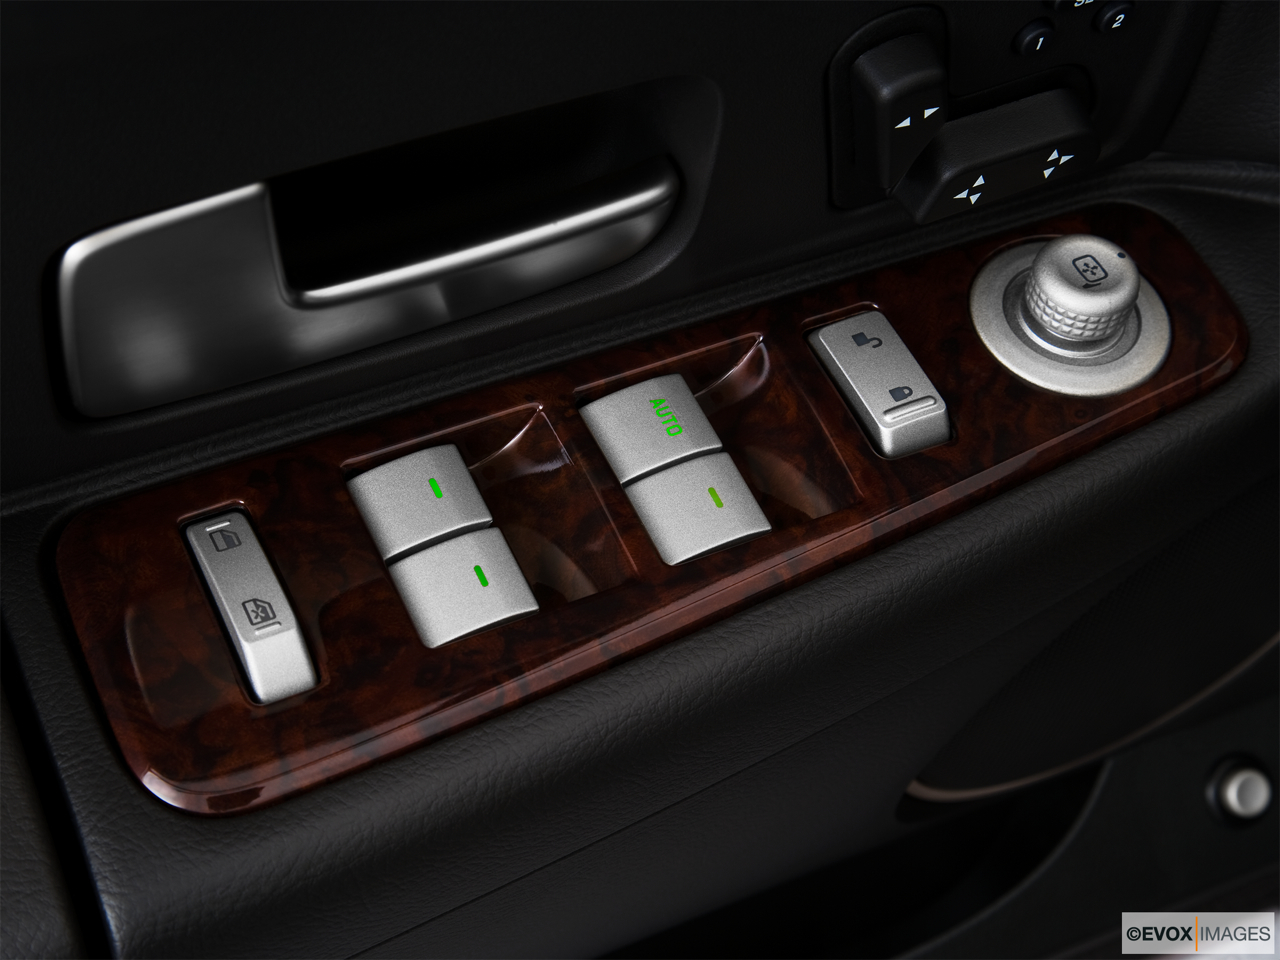 2010 Lincoln Town Car Signature L Driver's side inside window controls.